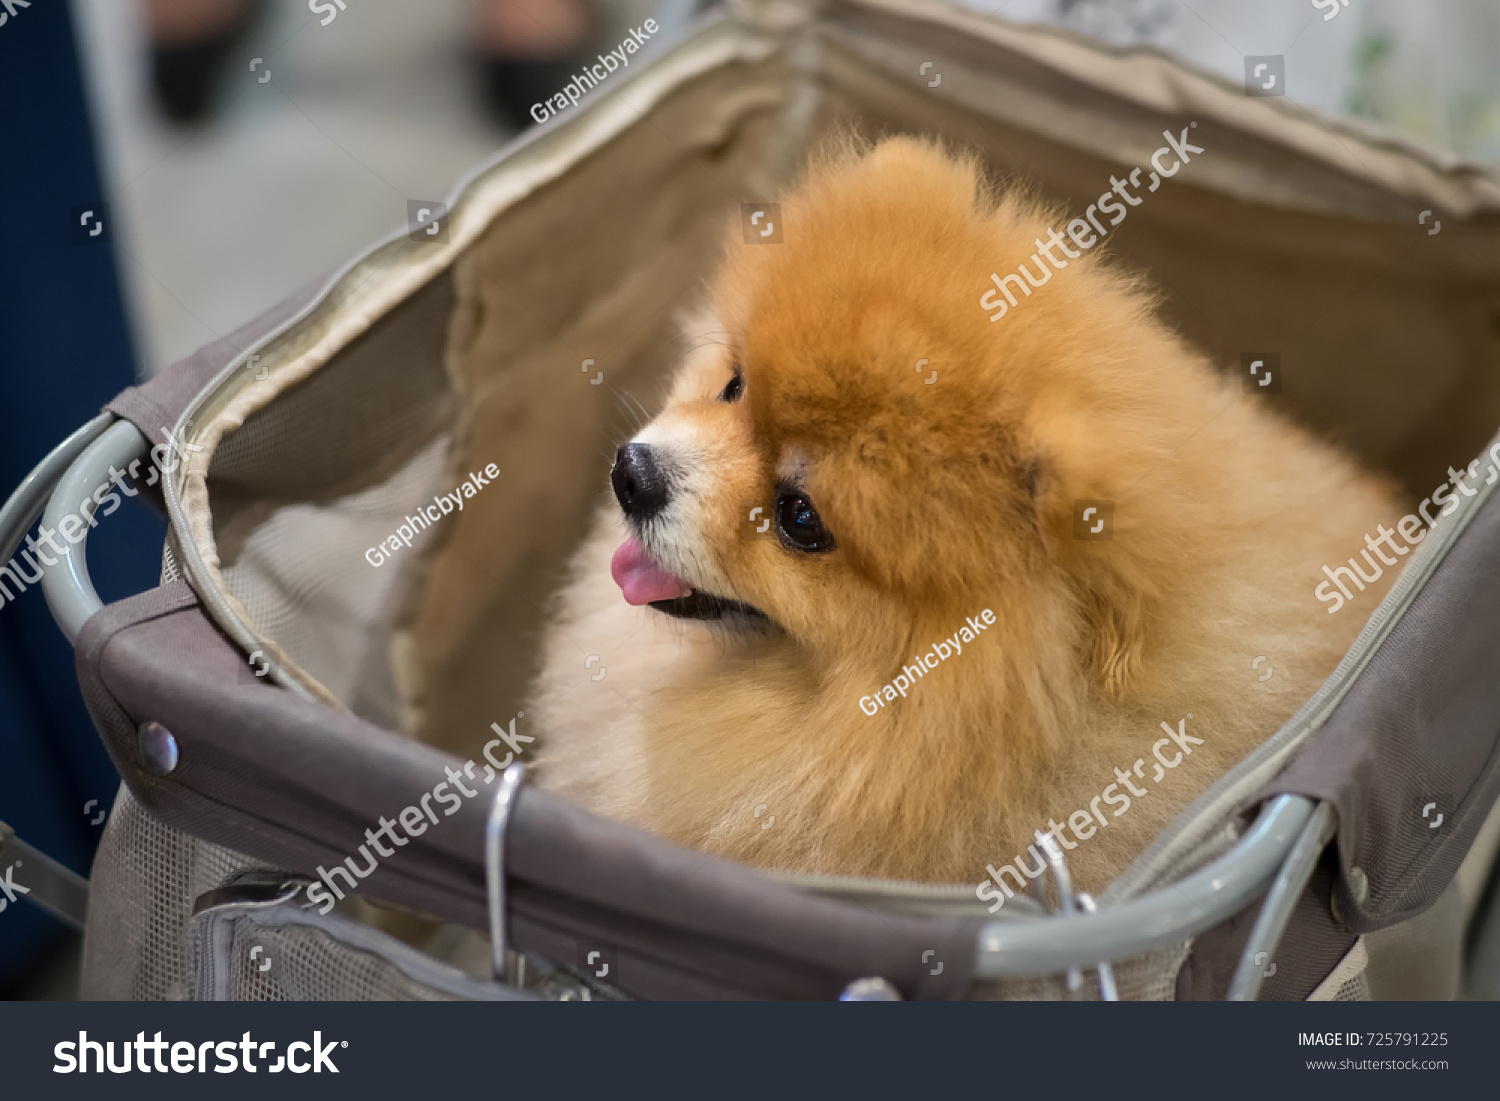 Amazing Pomeranian Brown Adorable Dog - stock-photo-pomeranian-cute-dog-sit-in-the-trolley-in-supermarket-725791225  2018_292085  .jpg